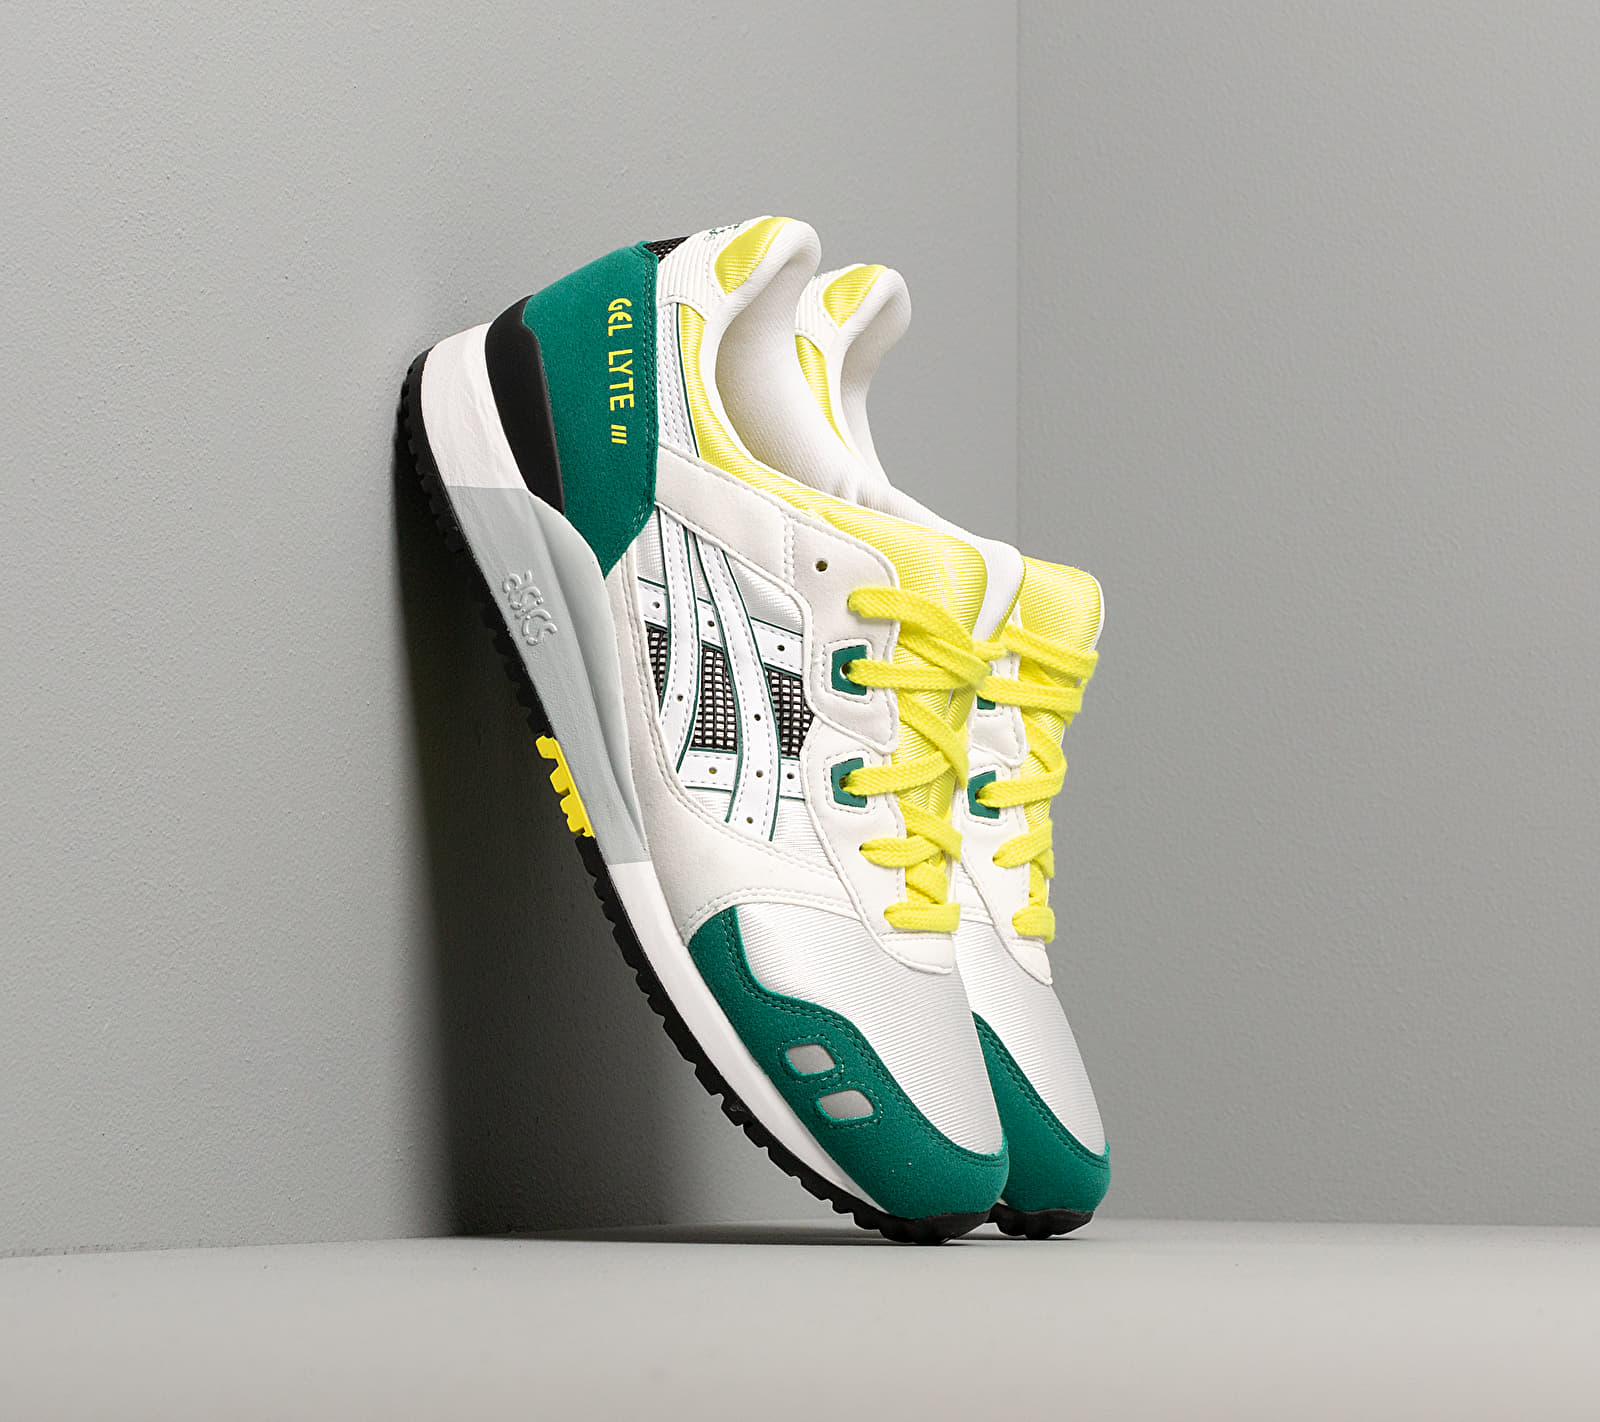 Asics GEL-LYTE III OG White/ Yellow EUR 45